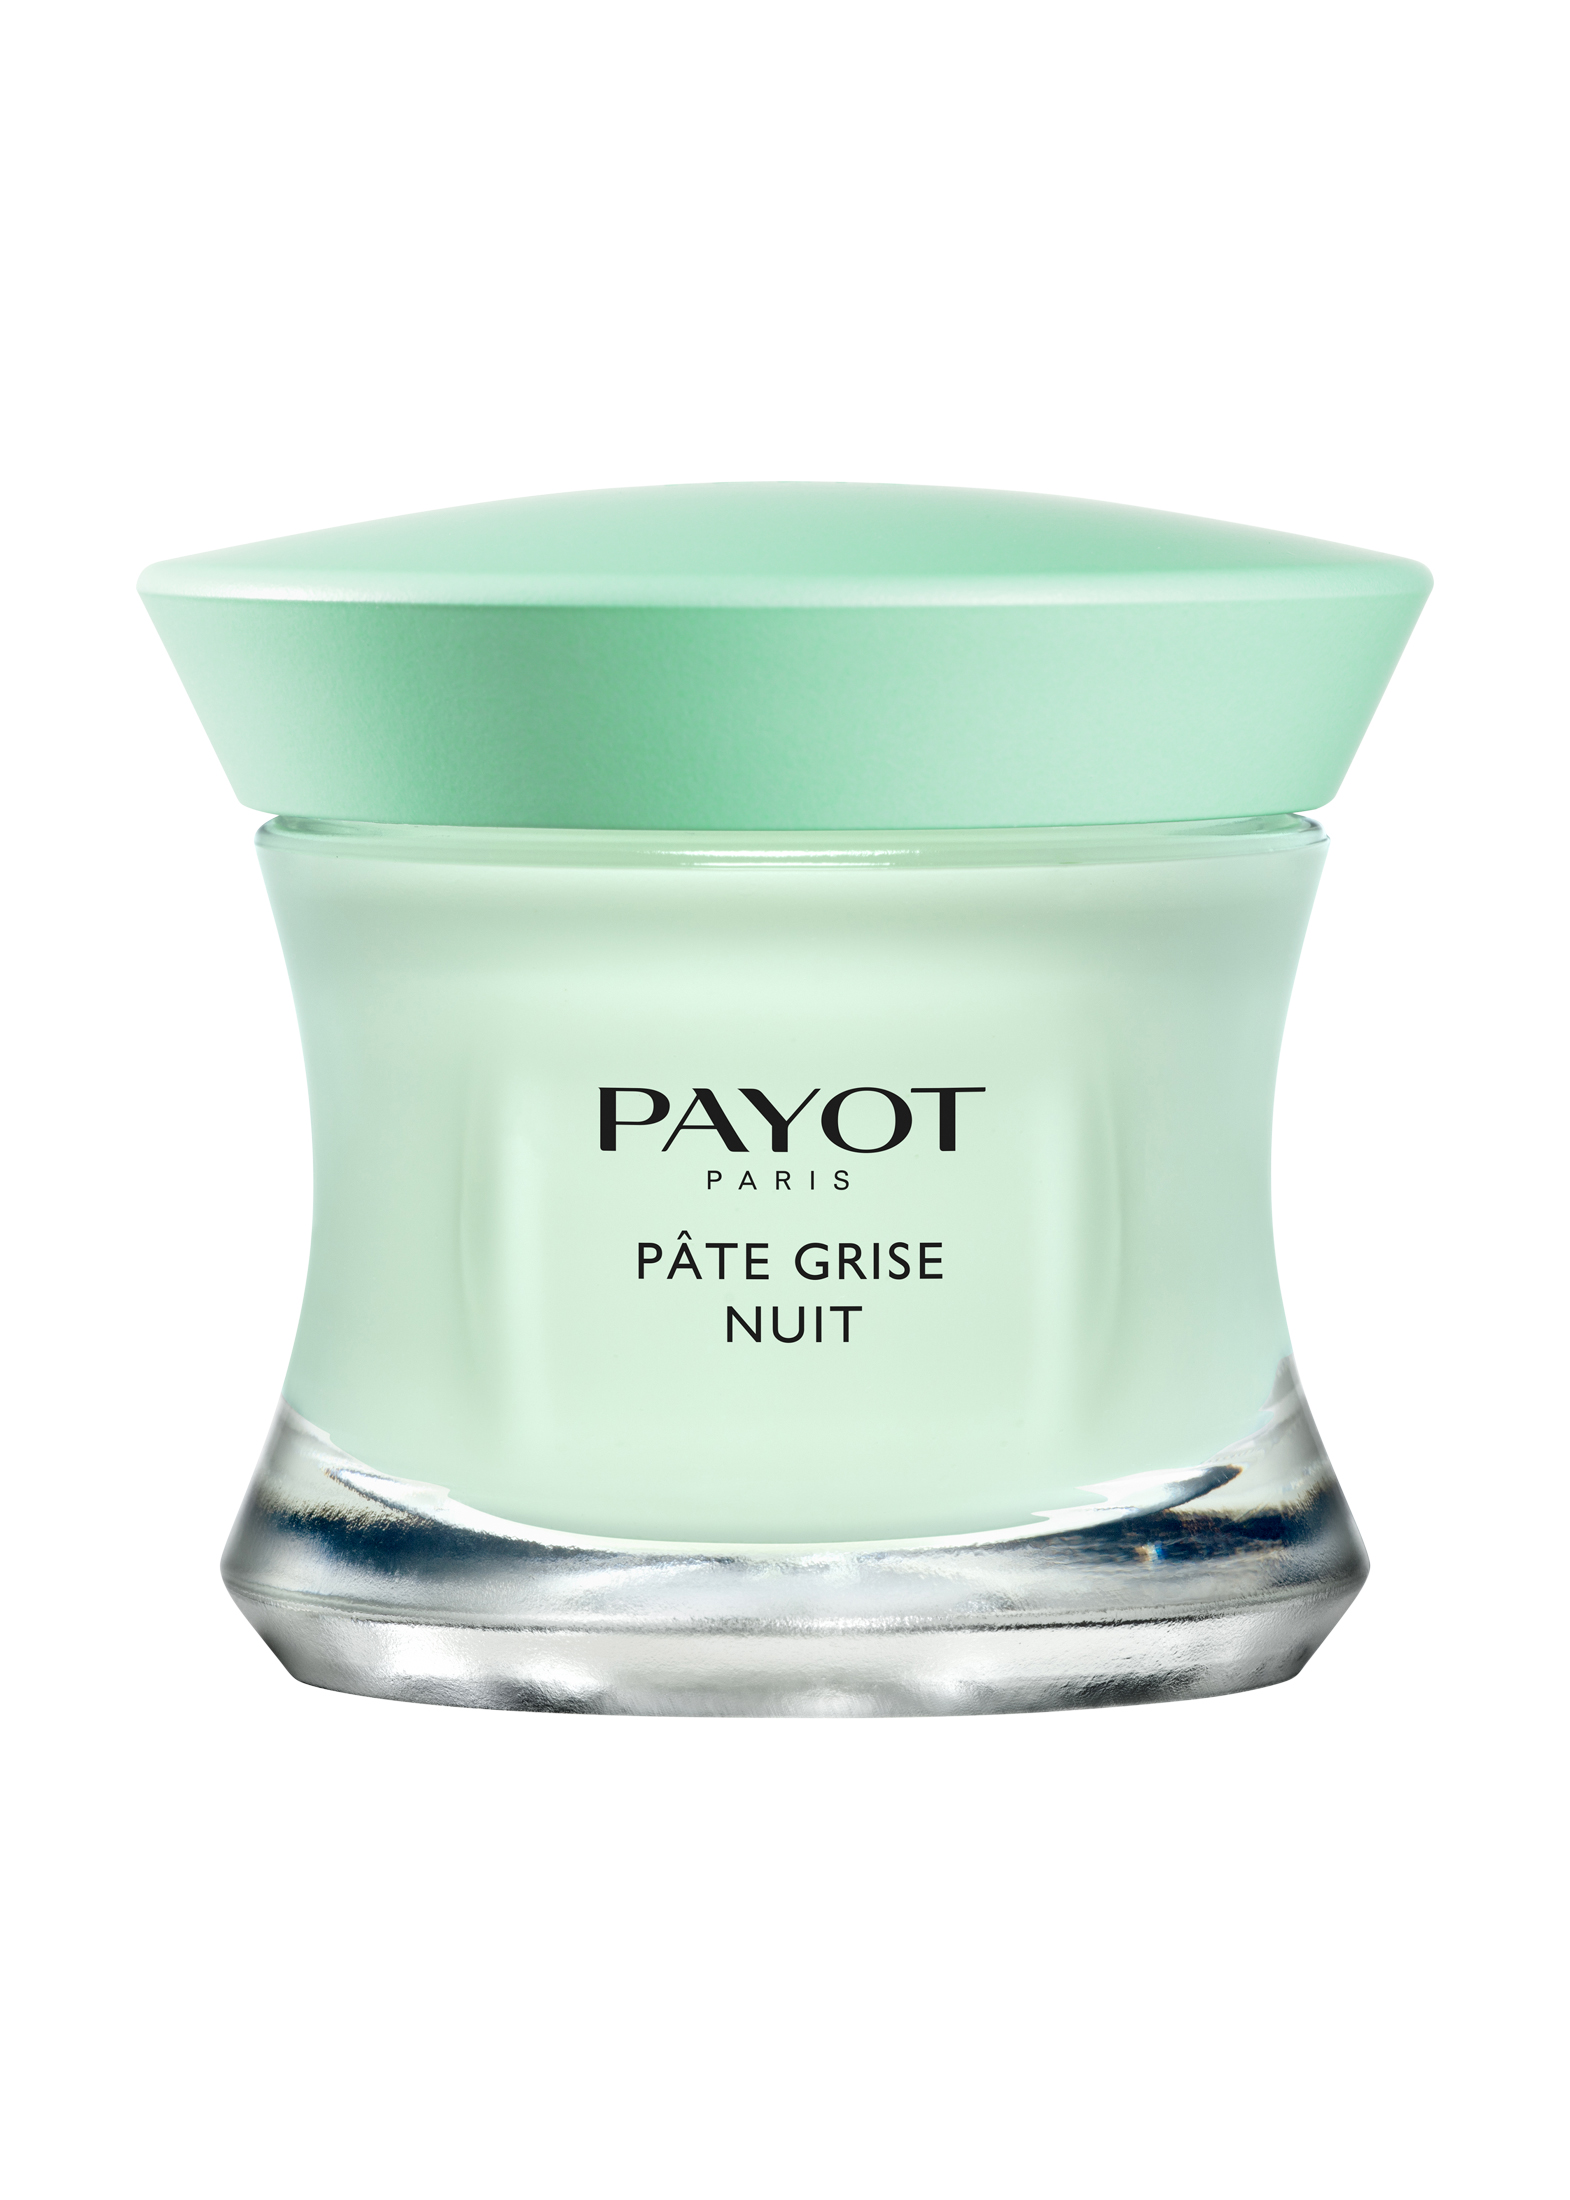 Pate Grise Nuit, 50ml image number 0